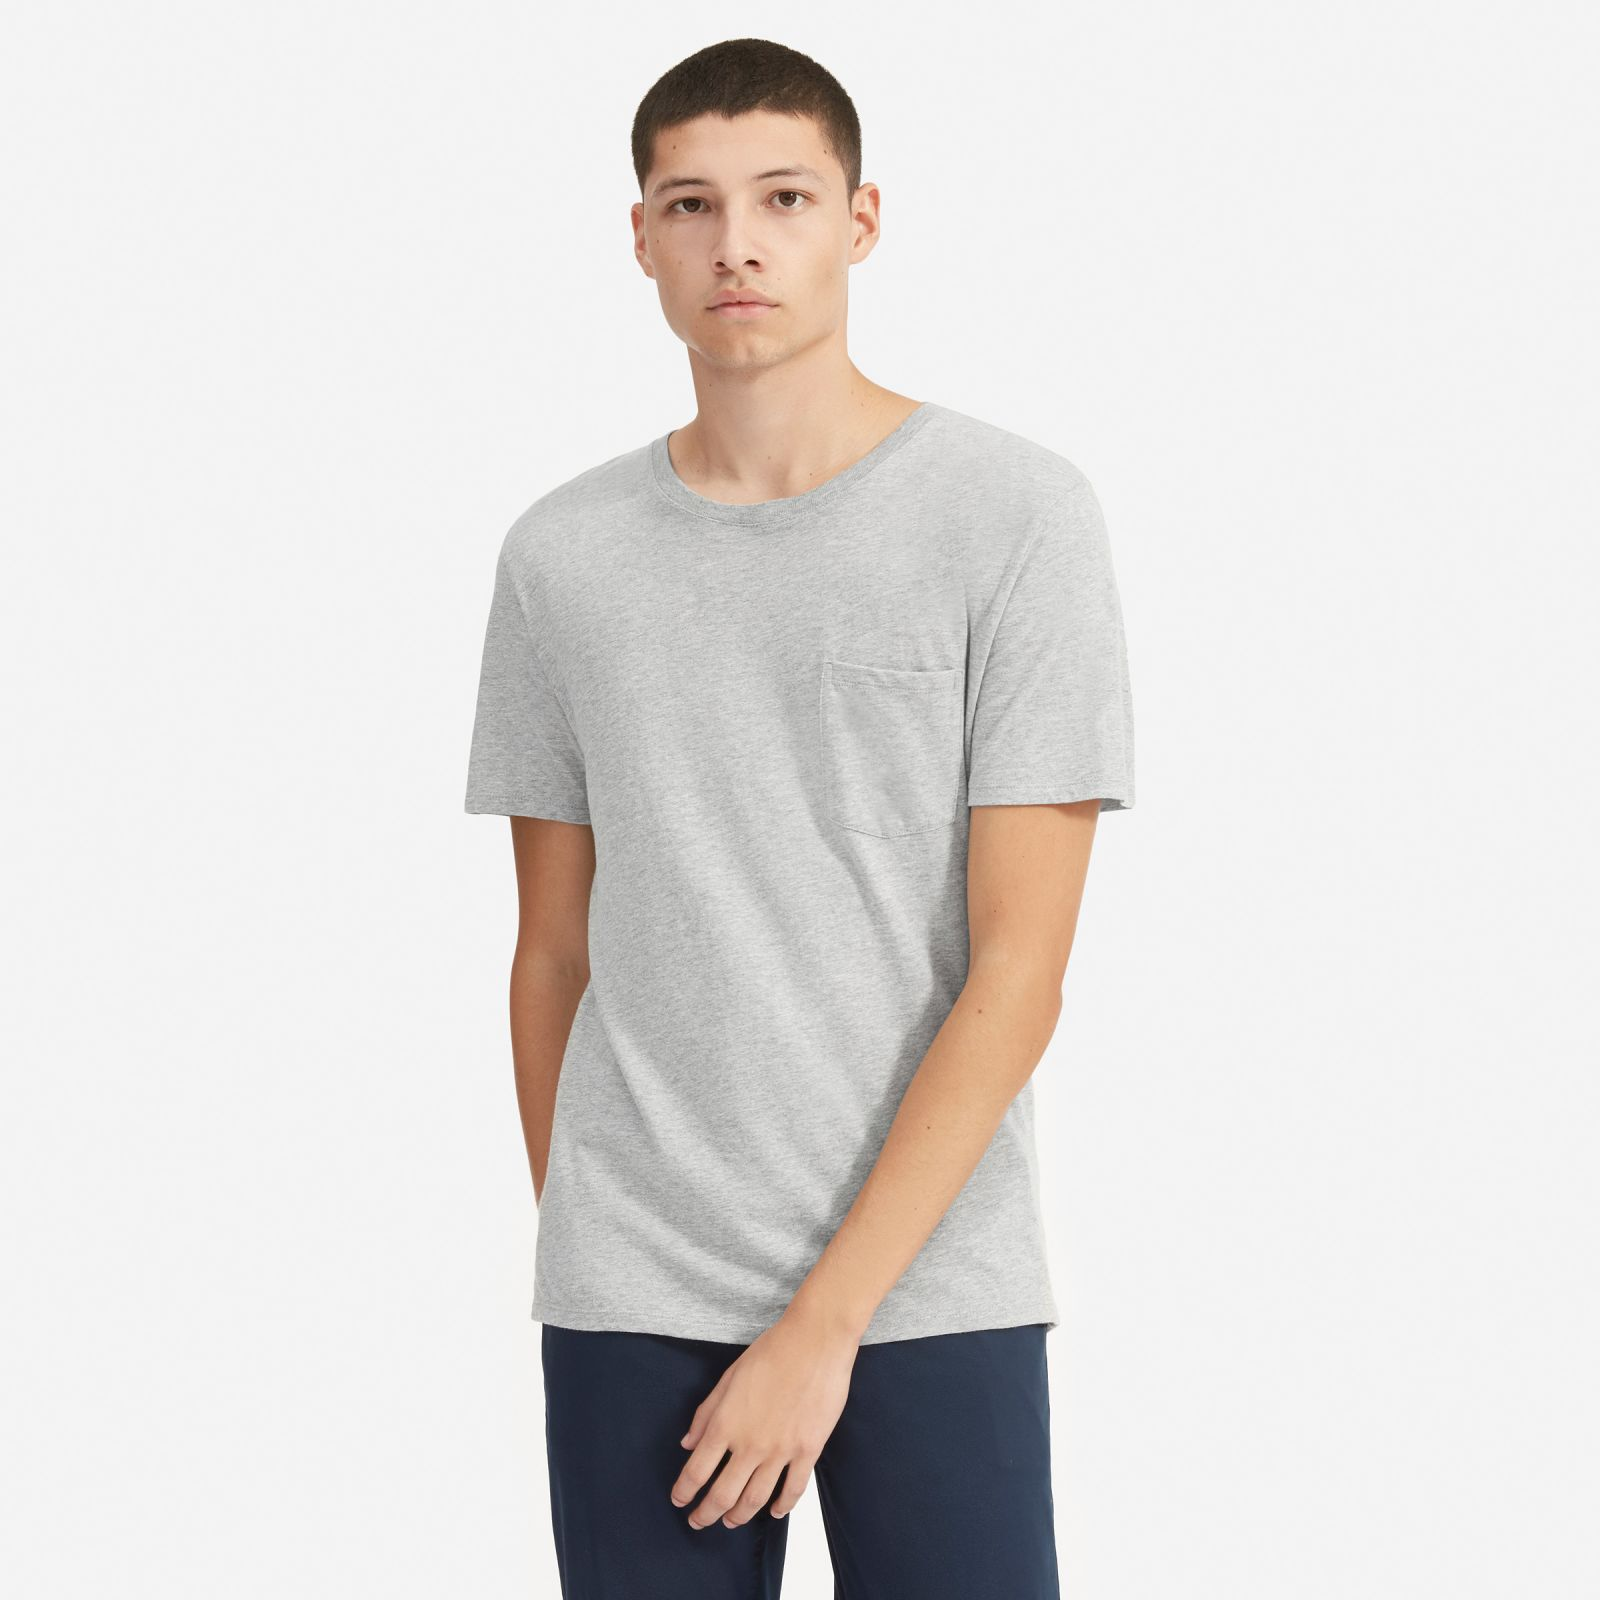 Men's Cotton Pocket T-Shirt | Uniform